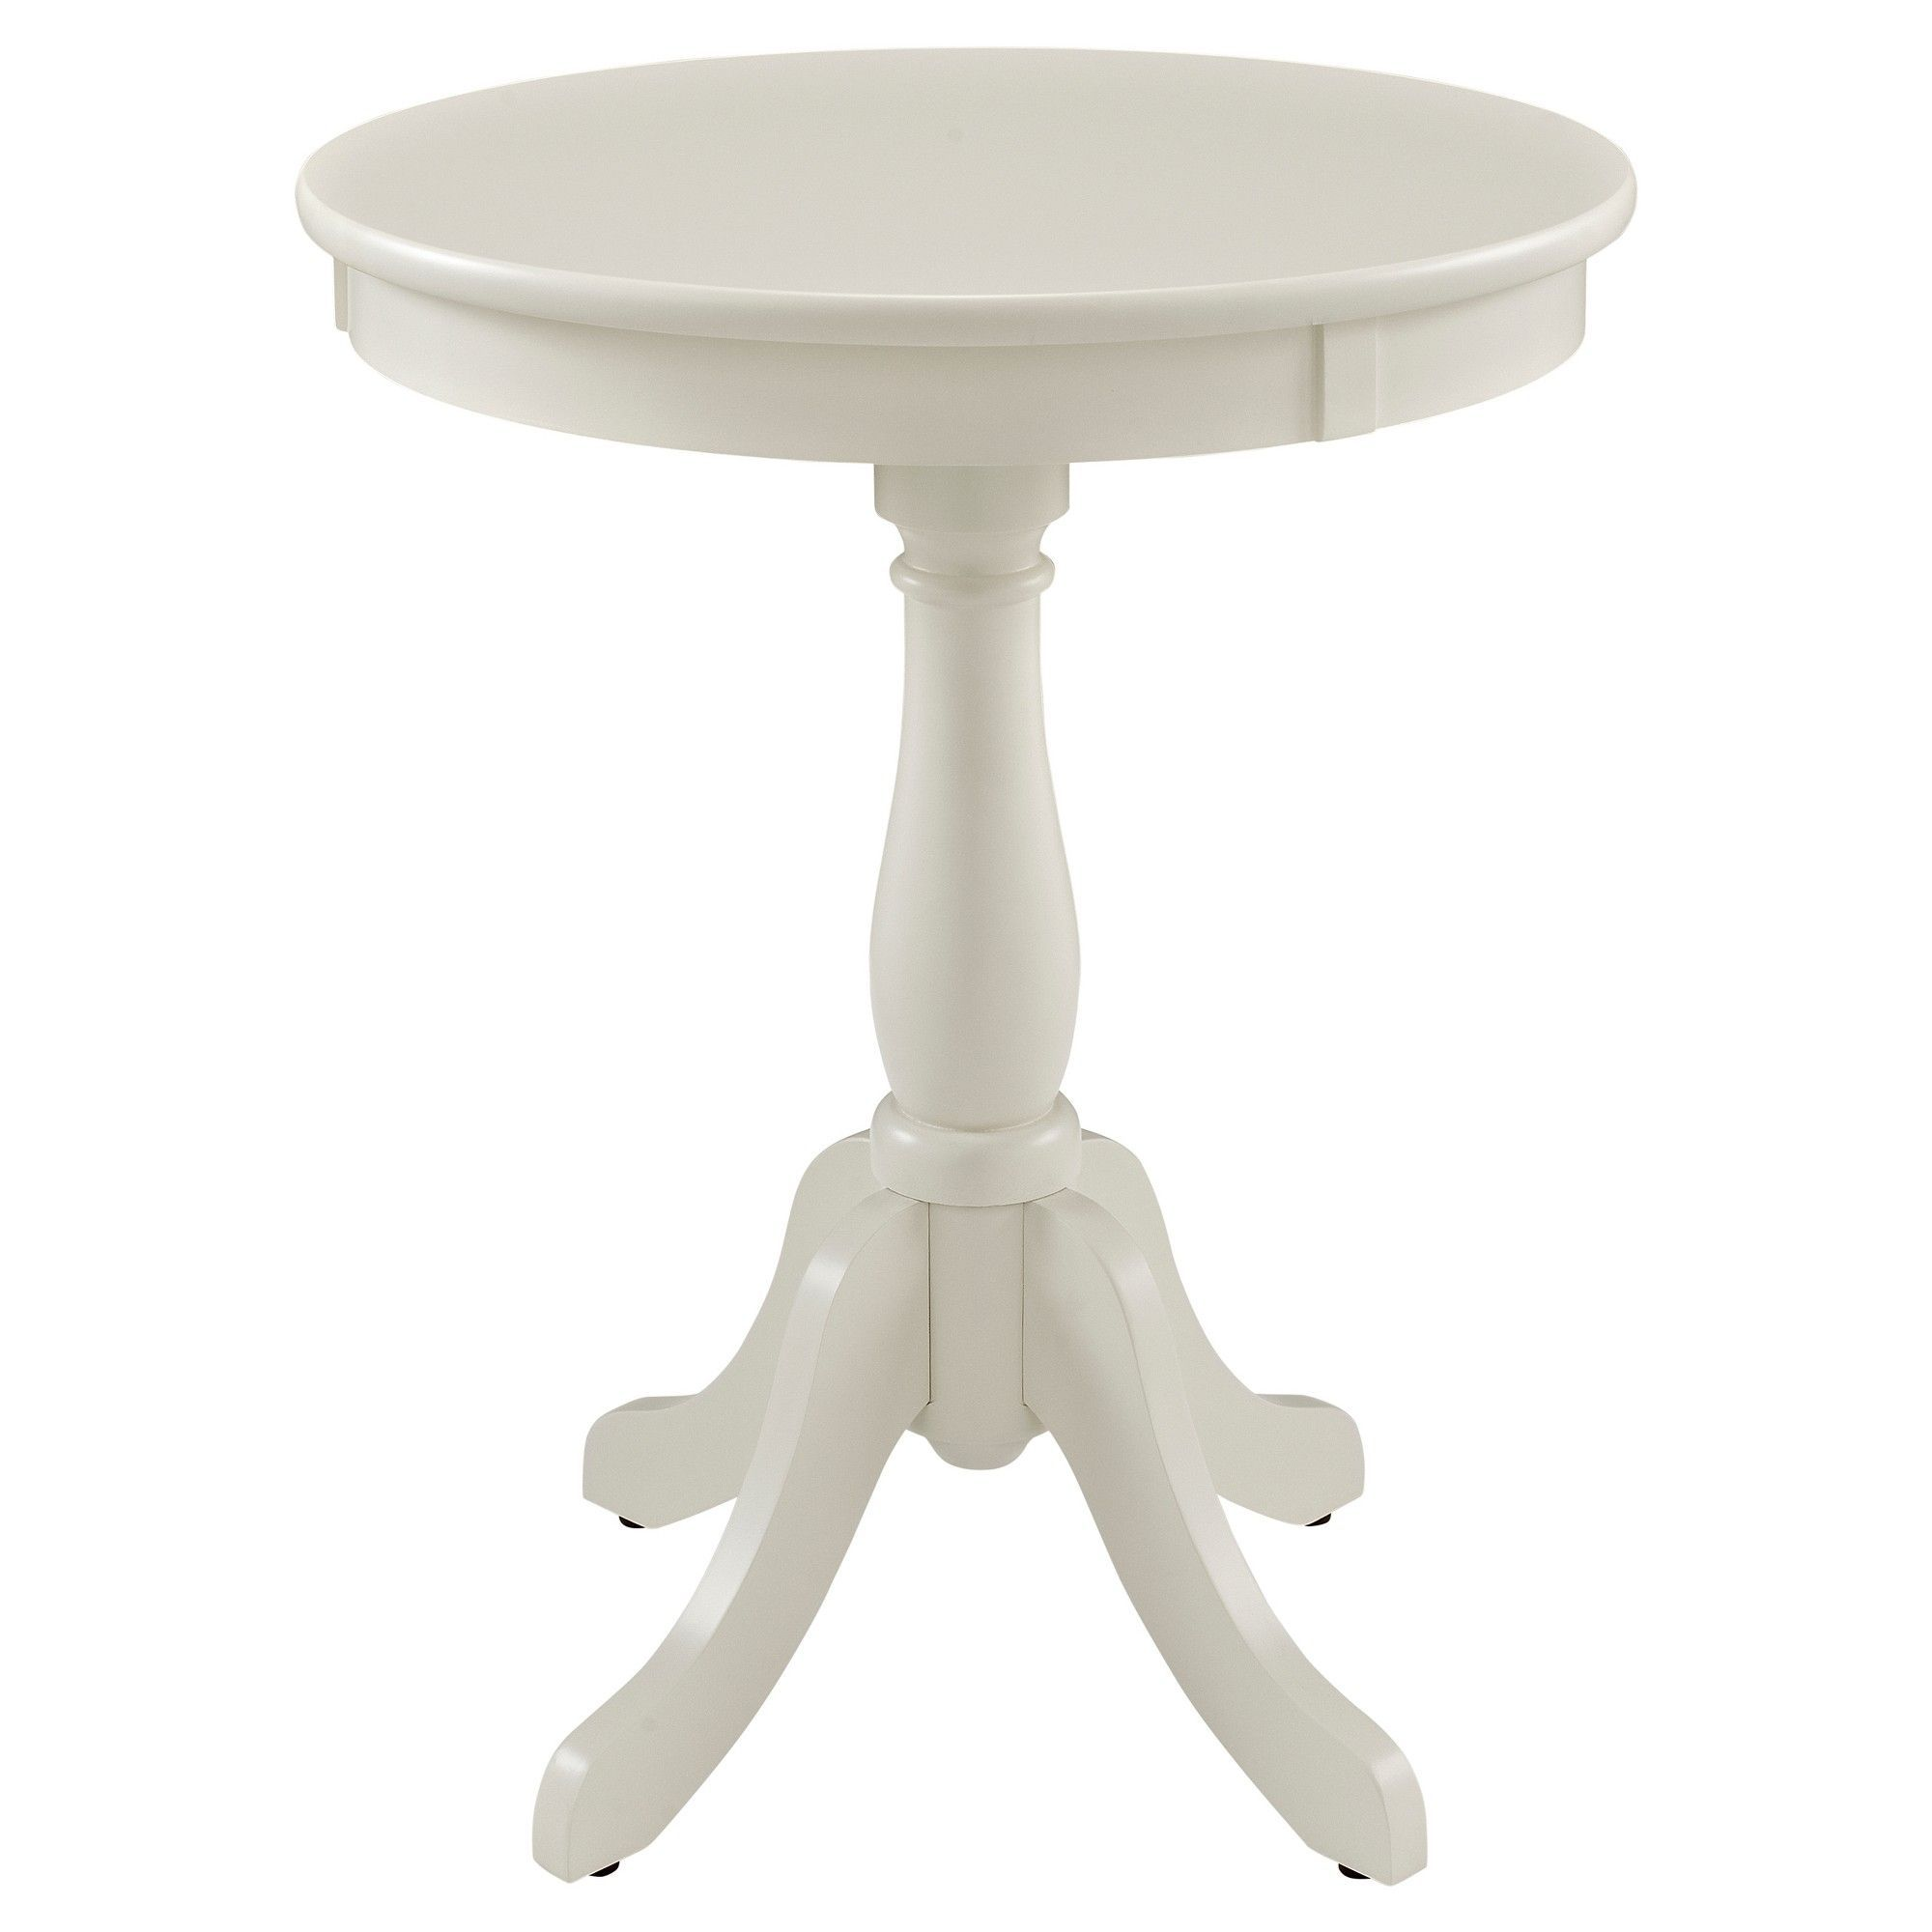 sara round table white oak grove collection products accent pink metal foot patio umbrella sportcraft ping pong black dining and chairs danish modern side wine storage cabinets